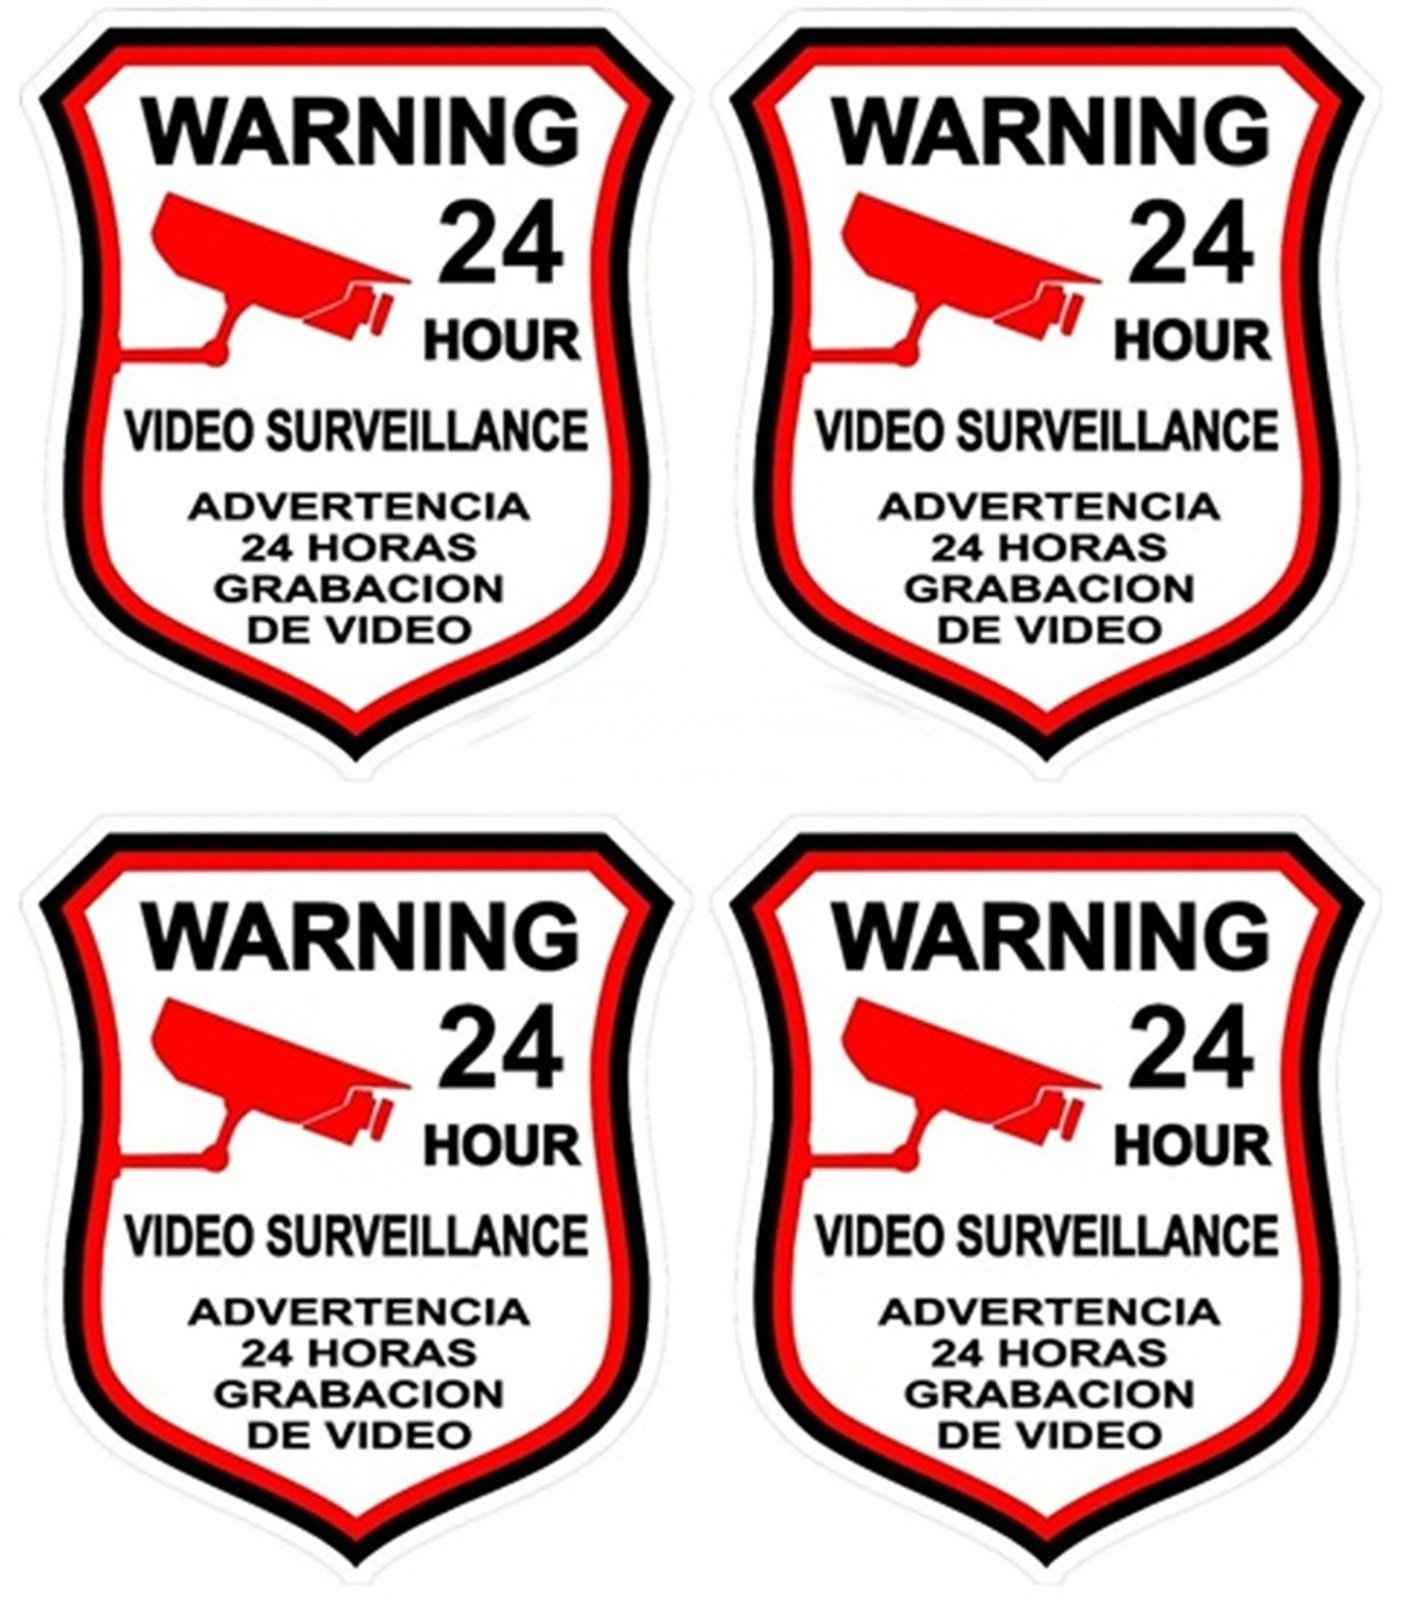 4 Pcs Heart-Stopping Unique Warning 24 Hour Video Surveillance Sticker Sign Home Bumper Security Hr Decals Outdoor Holder House Neighbor Business Burglar Fence Property Signs Size 3''x4.5'' Spanish by Chiam-Mart